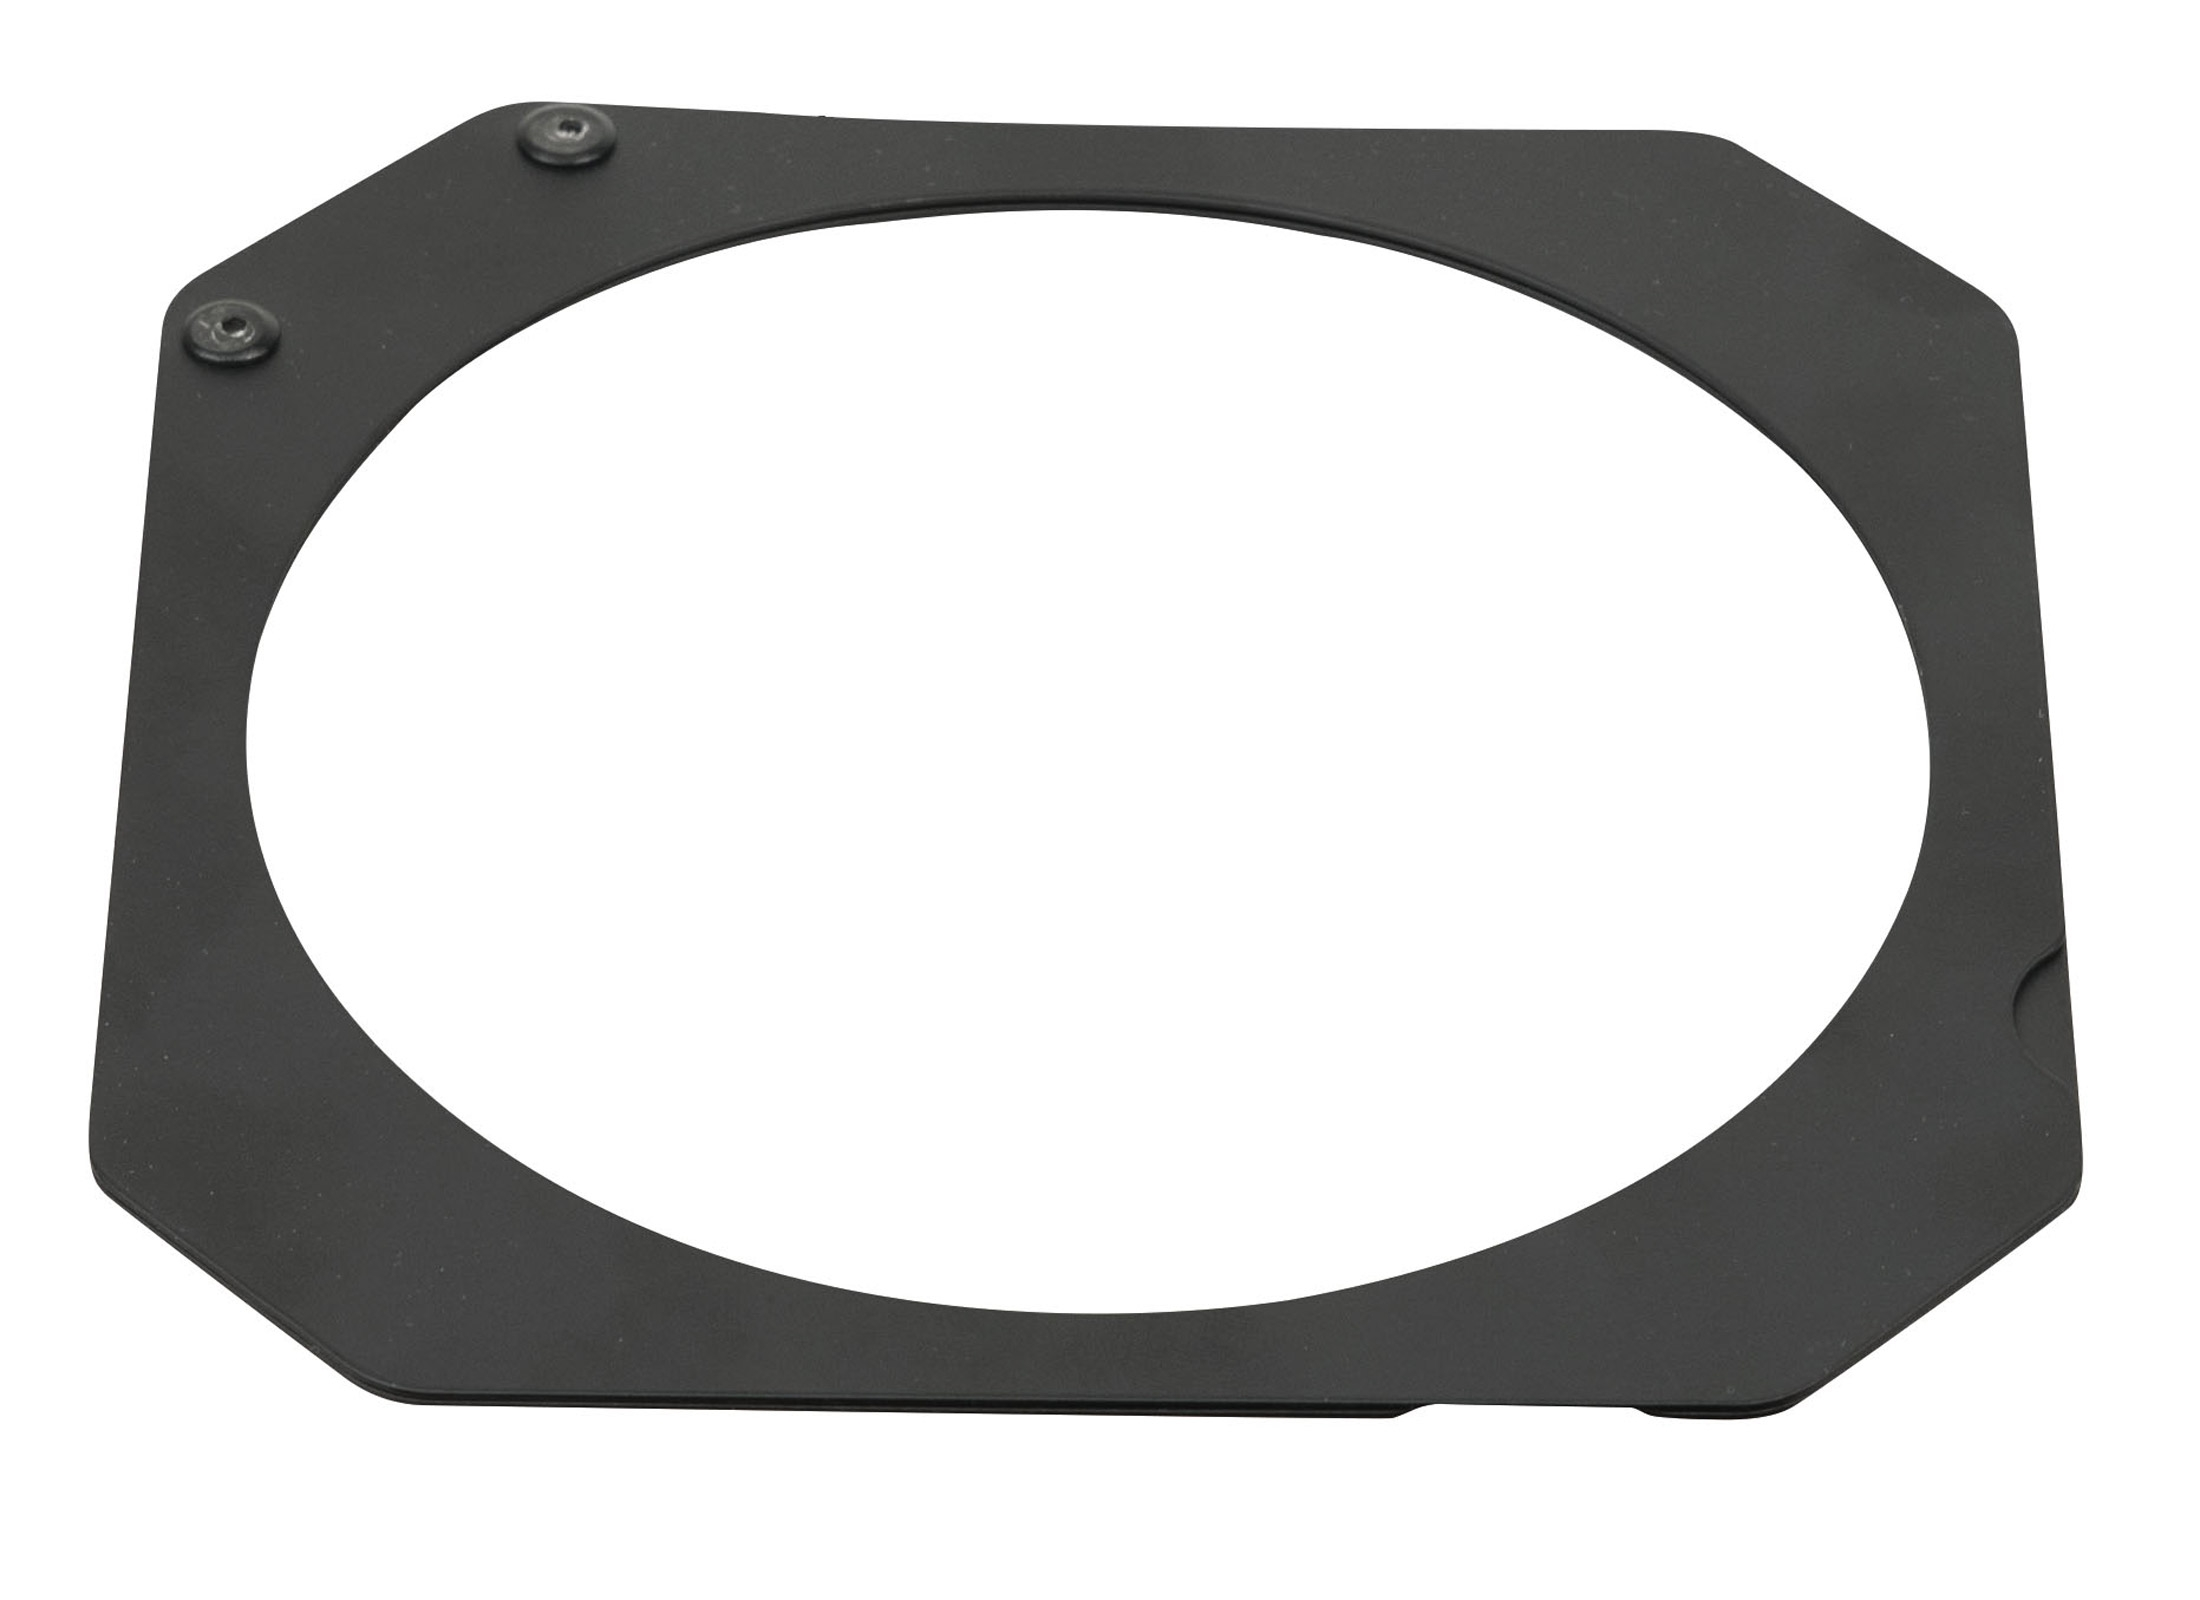 Infinity Signature Color Filter Frame, Fresnel Online At Low Prices ...